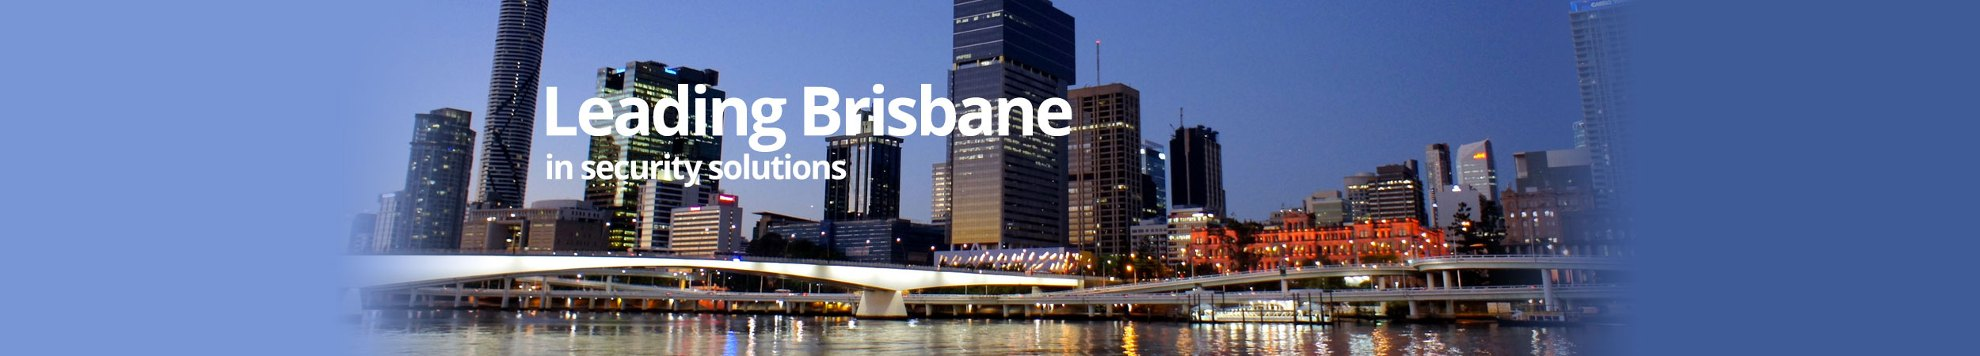 Leading Brisbane in commercial security